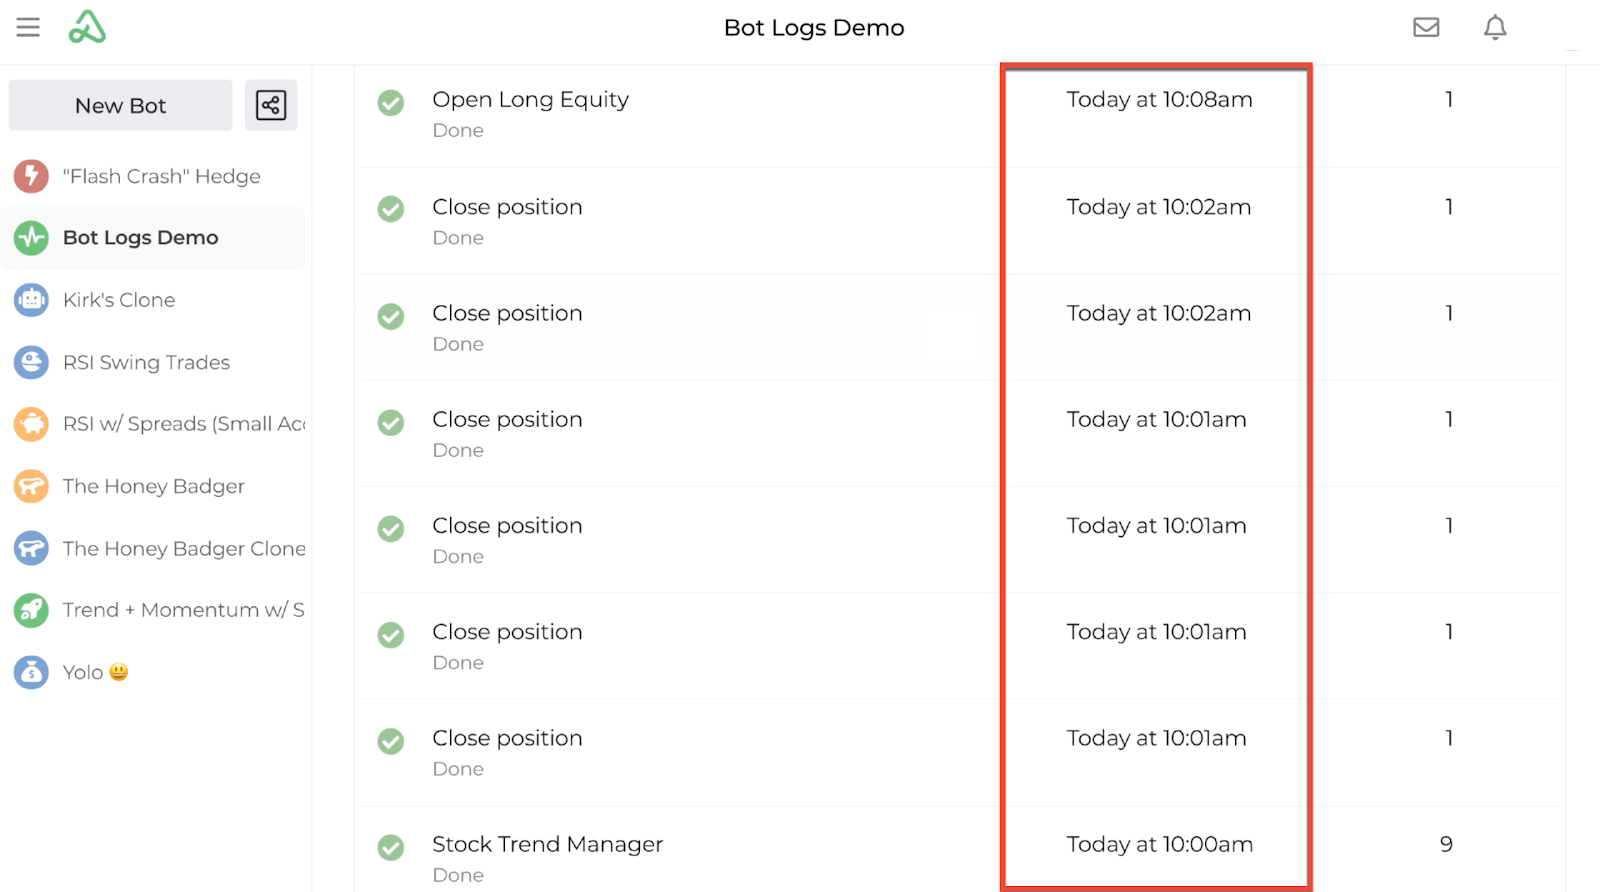 Screenshot highlighting the time stamp for each entry in the bot log